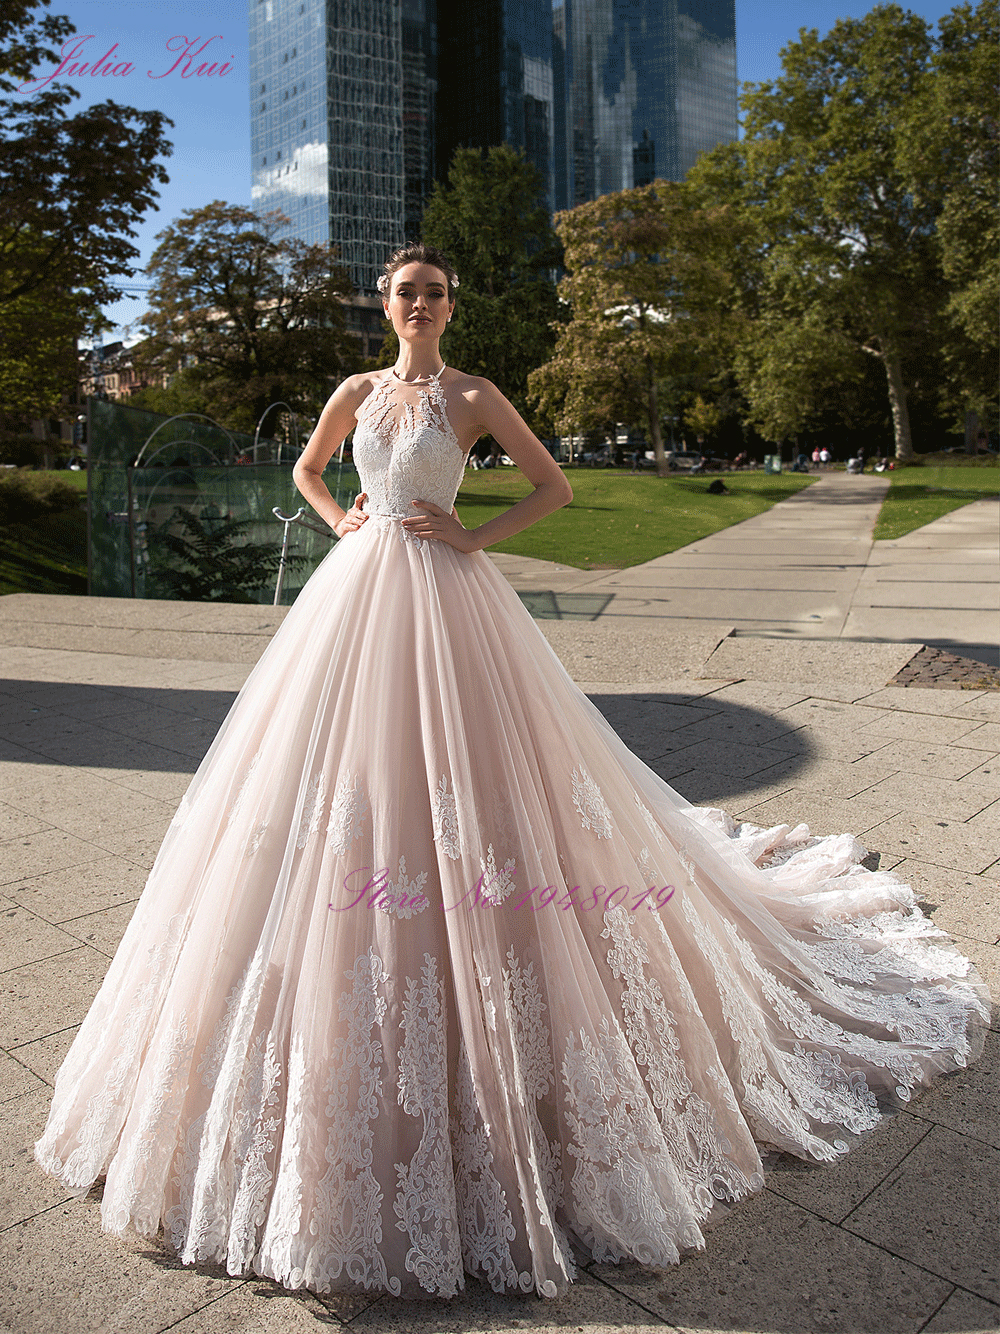 Julia Kui Vintage Ball Gown Wedding Dress 2020 Customized Sexy Halter Backless Court Train Princess Wedding Gowns - 4